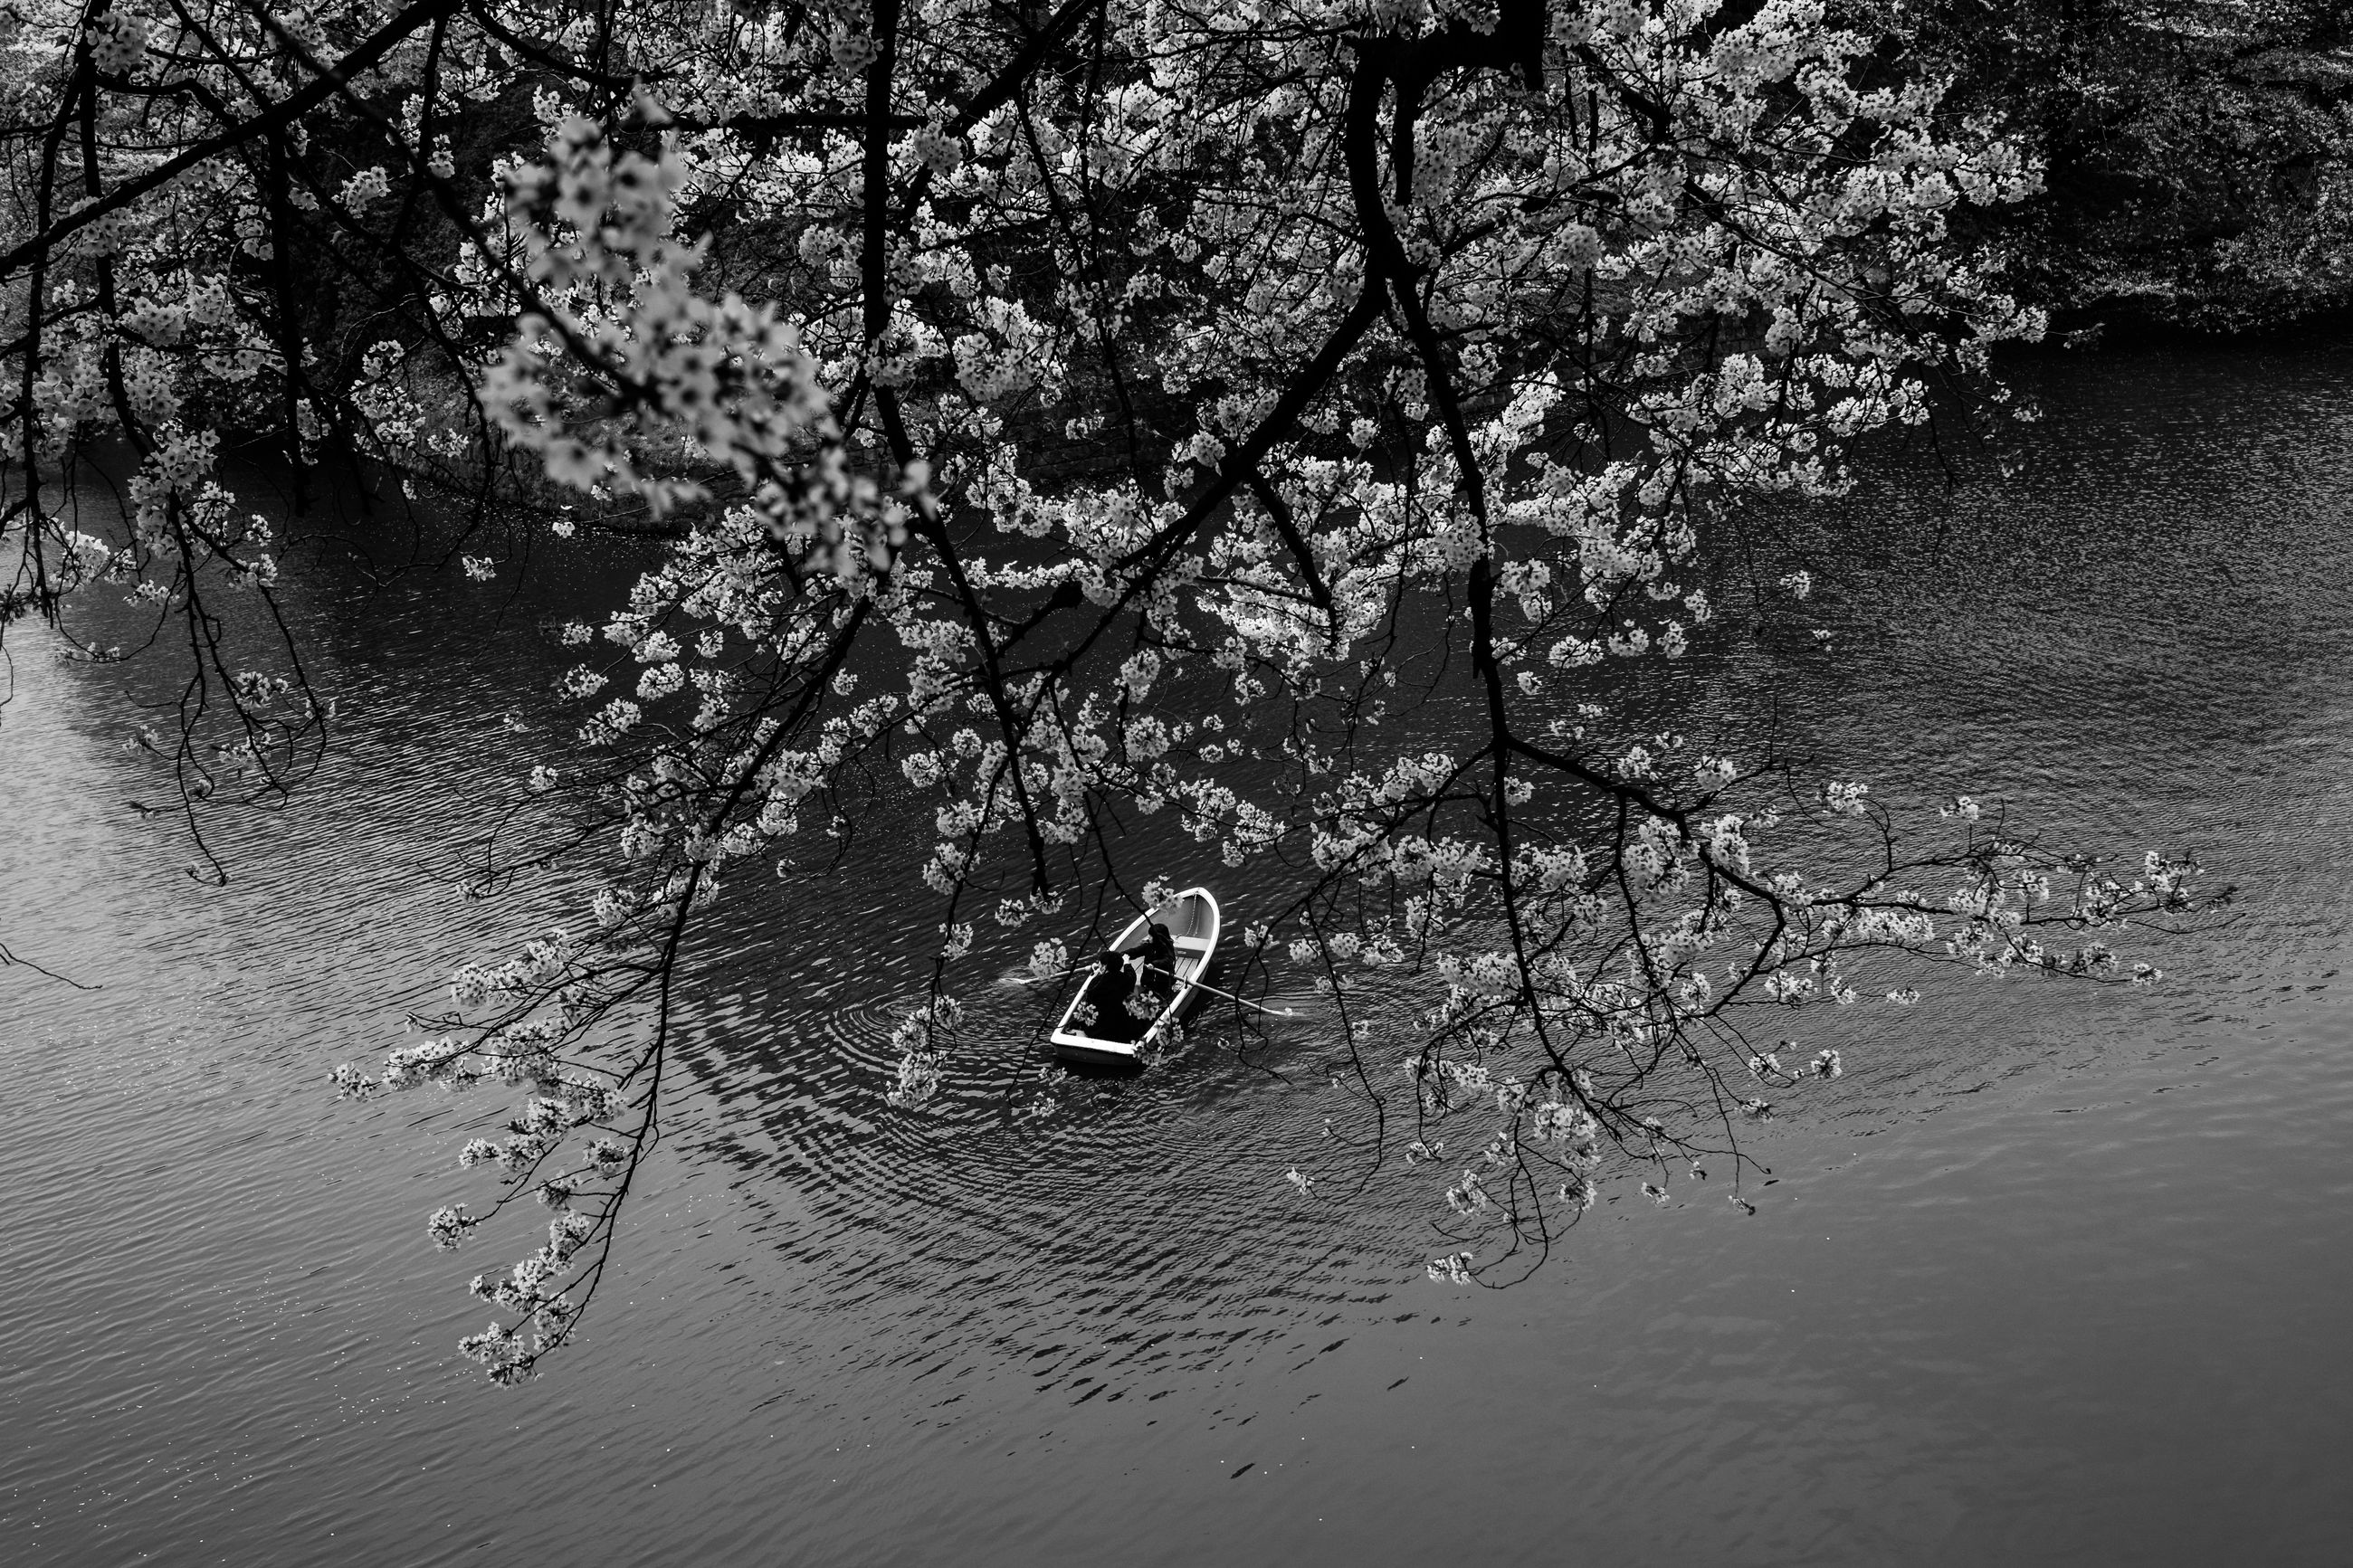 tree, water, branch, lake, reflection, scenics, tranquility, nature, growth, tranquil scene, non-urban scene, beauty in nature, idyllic, waterfront, springtime, flower, day, majestic, vacations, blossom, tourism, no people, freshness, swimming